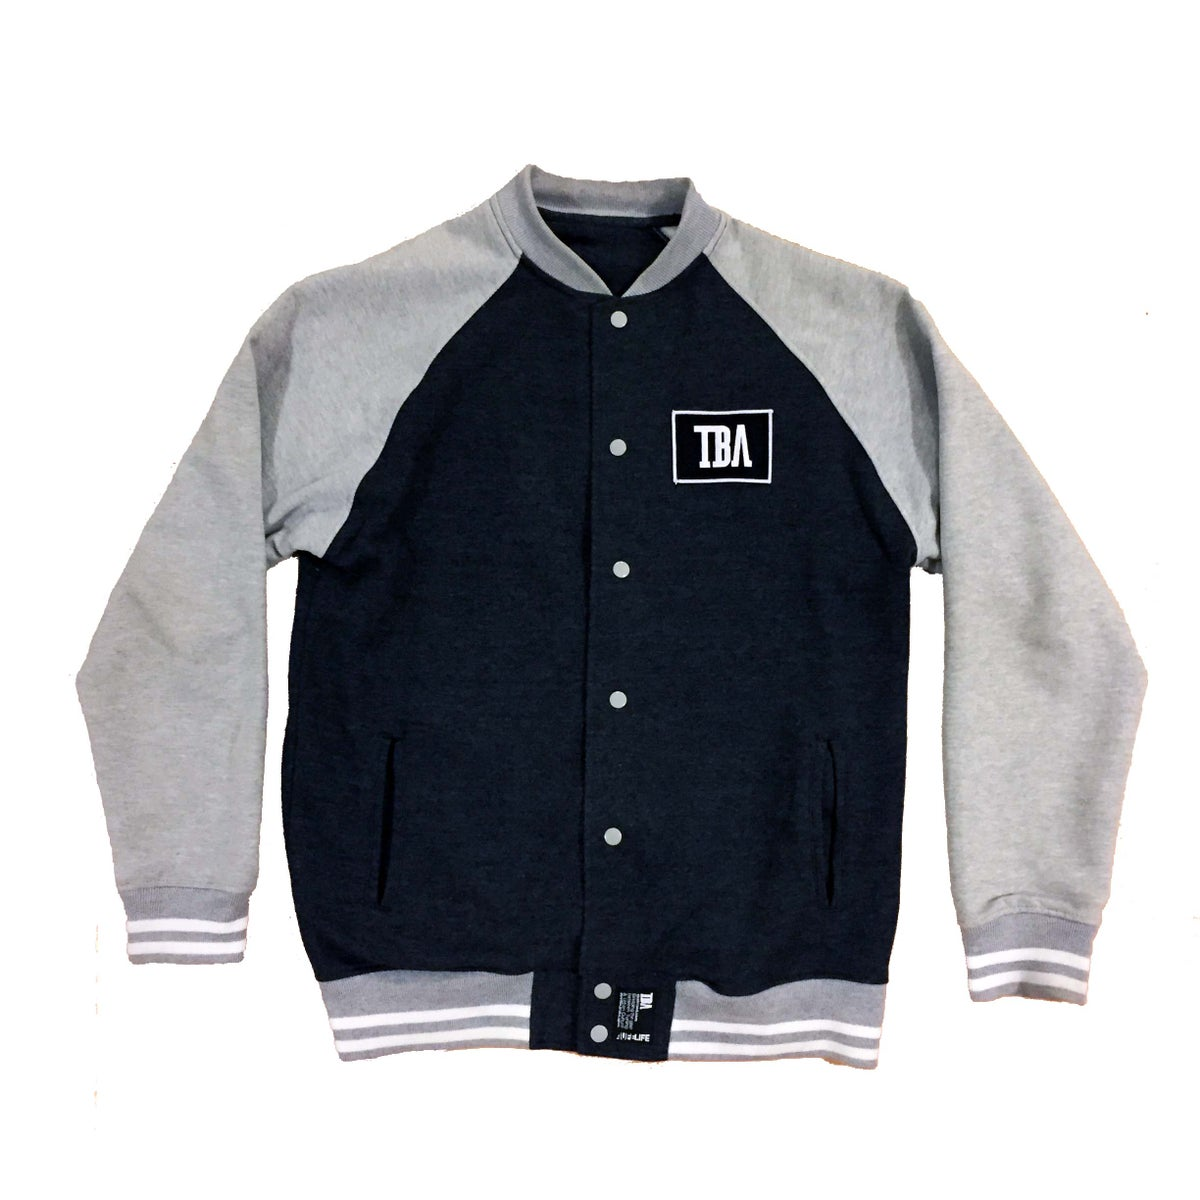 Tba clothing online